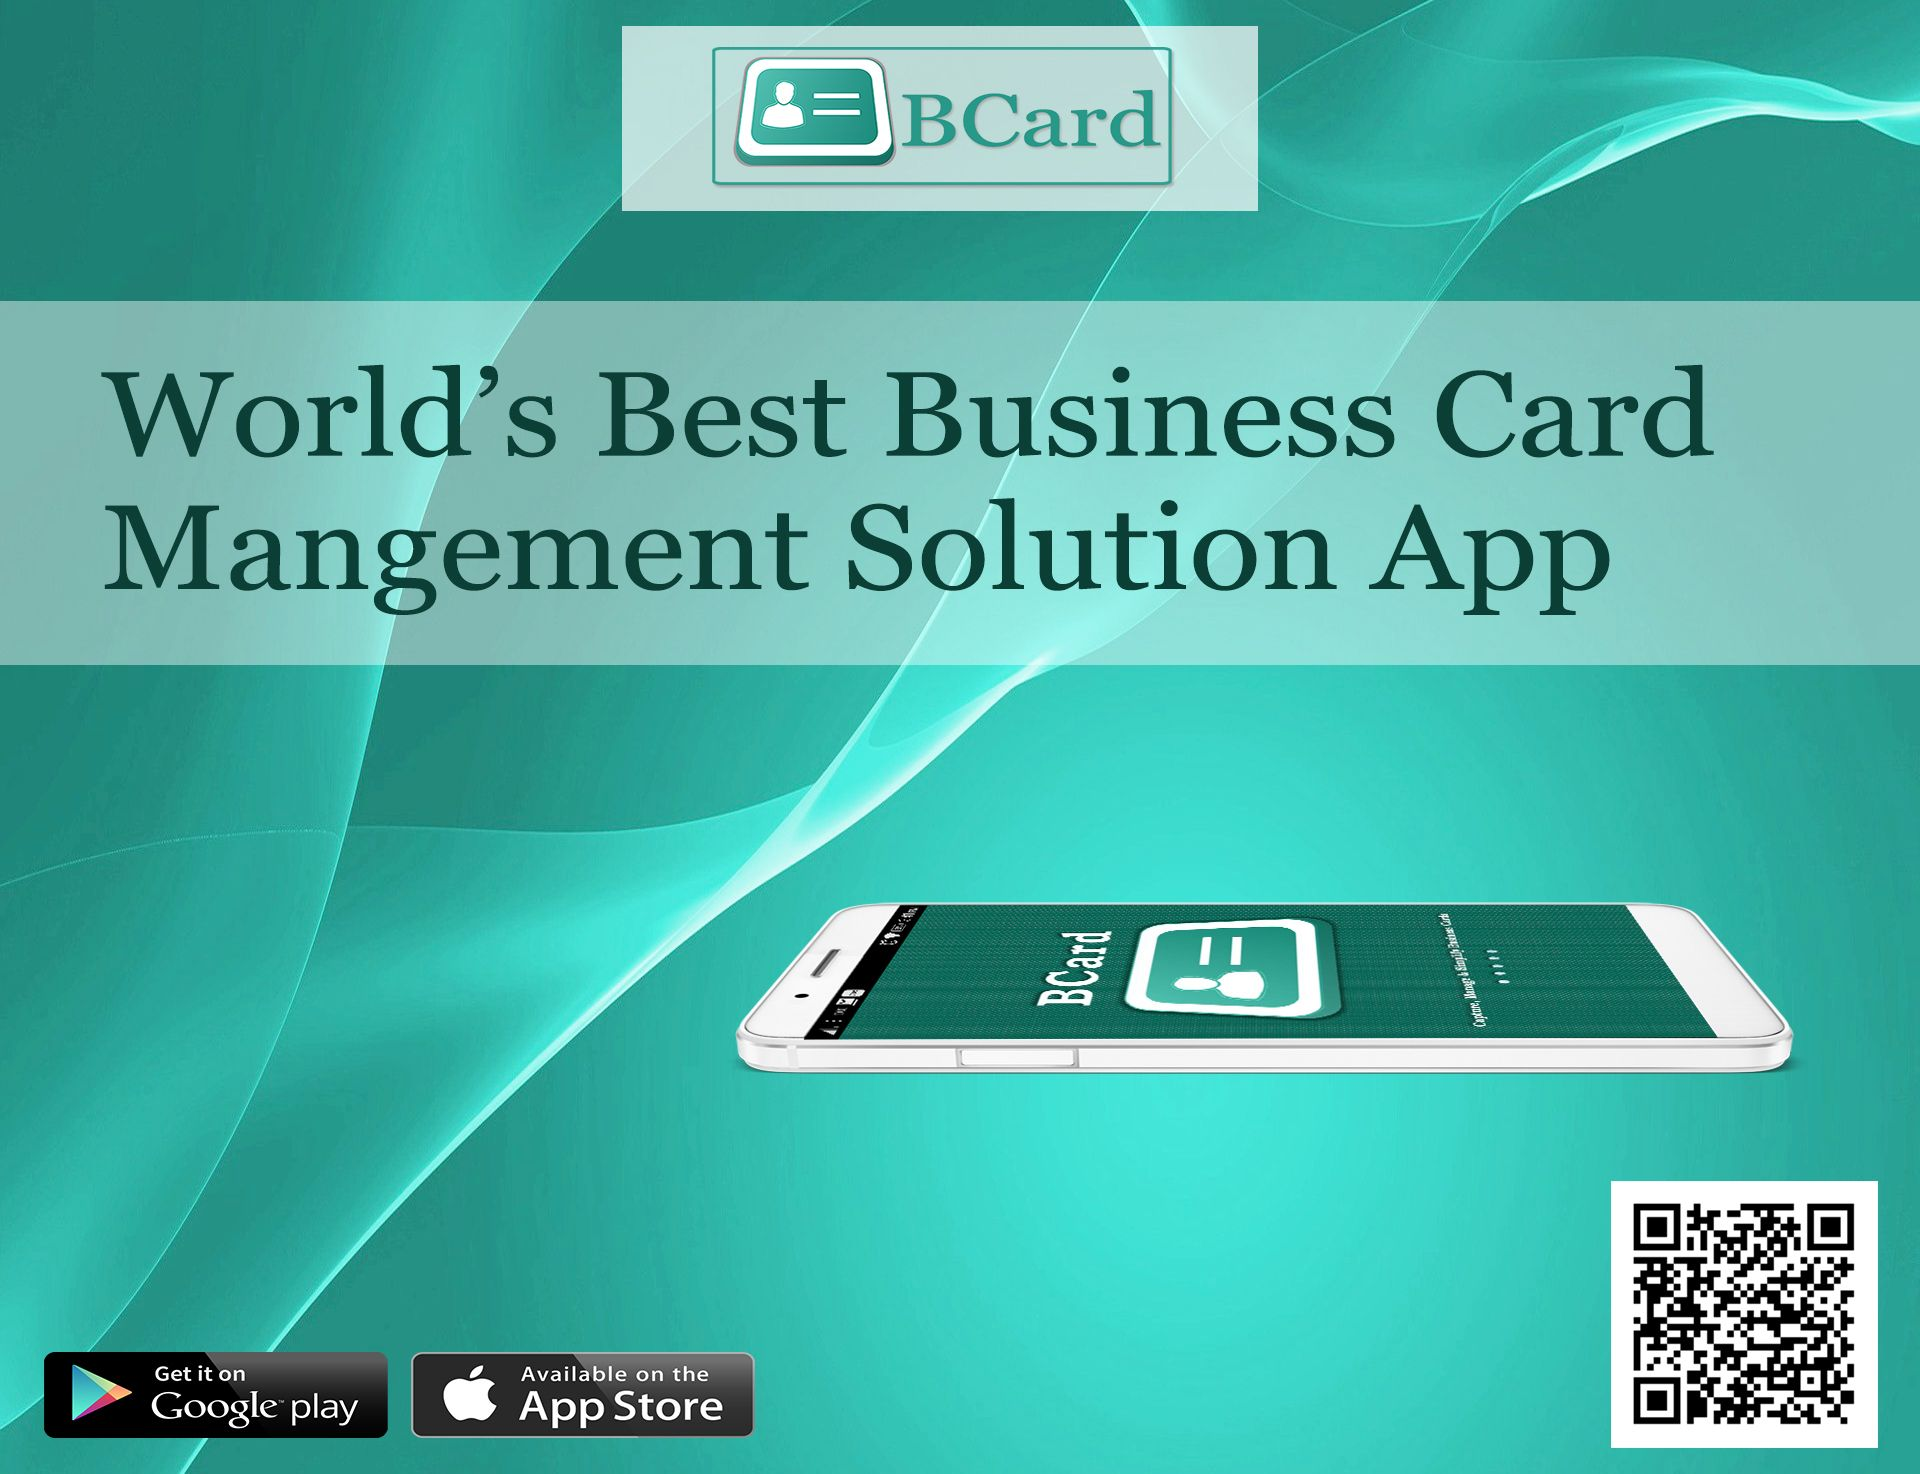 Save time save paper use bcard reader and digitize your paper save time save paper use bcard reader and digitize your paper business card digitallytpbcardreader colourmoves